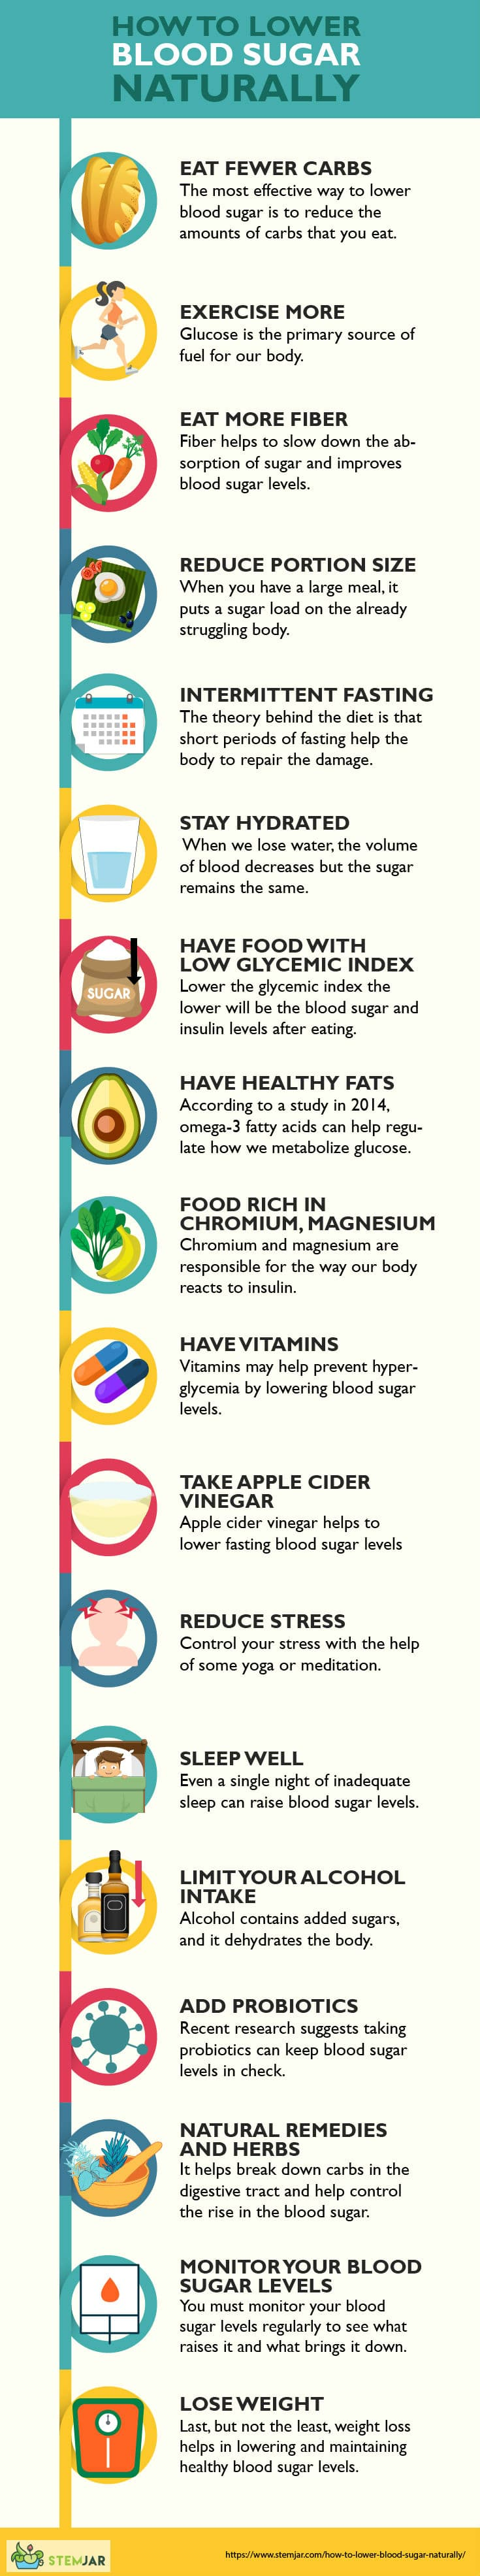 Lower blood sugar naturally infographic